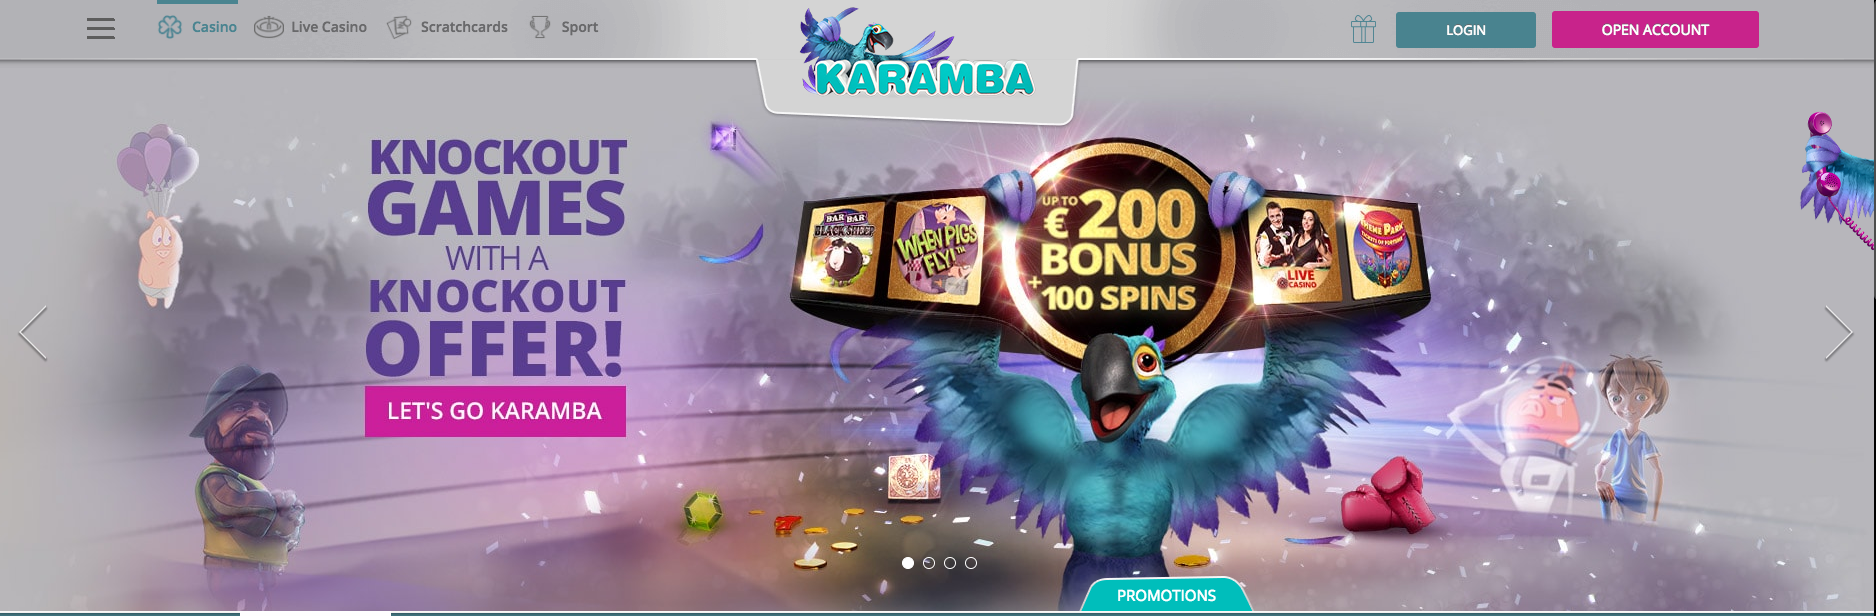 An image of cool welcoming offers at Karamba Casino